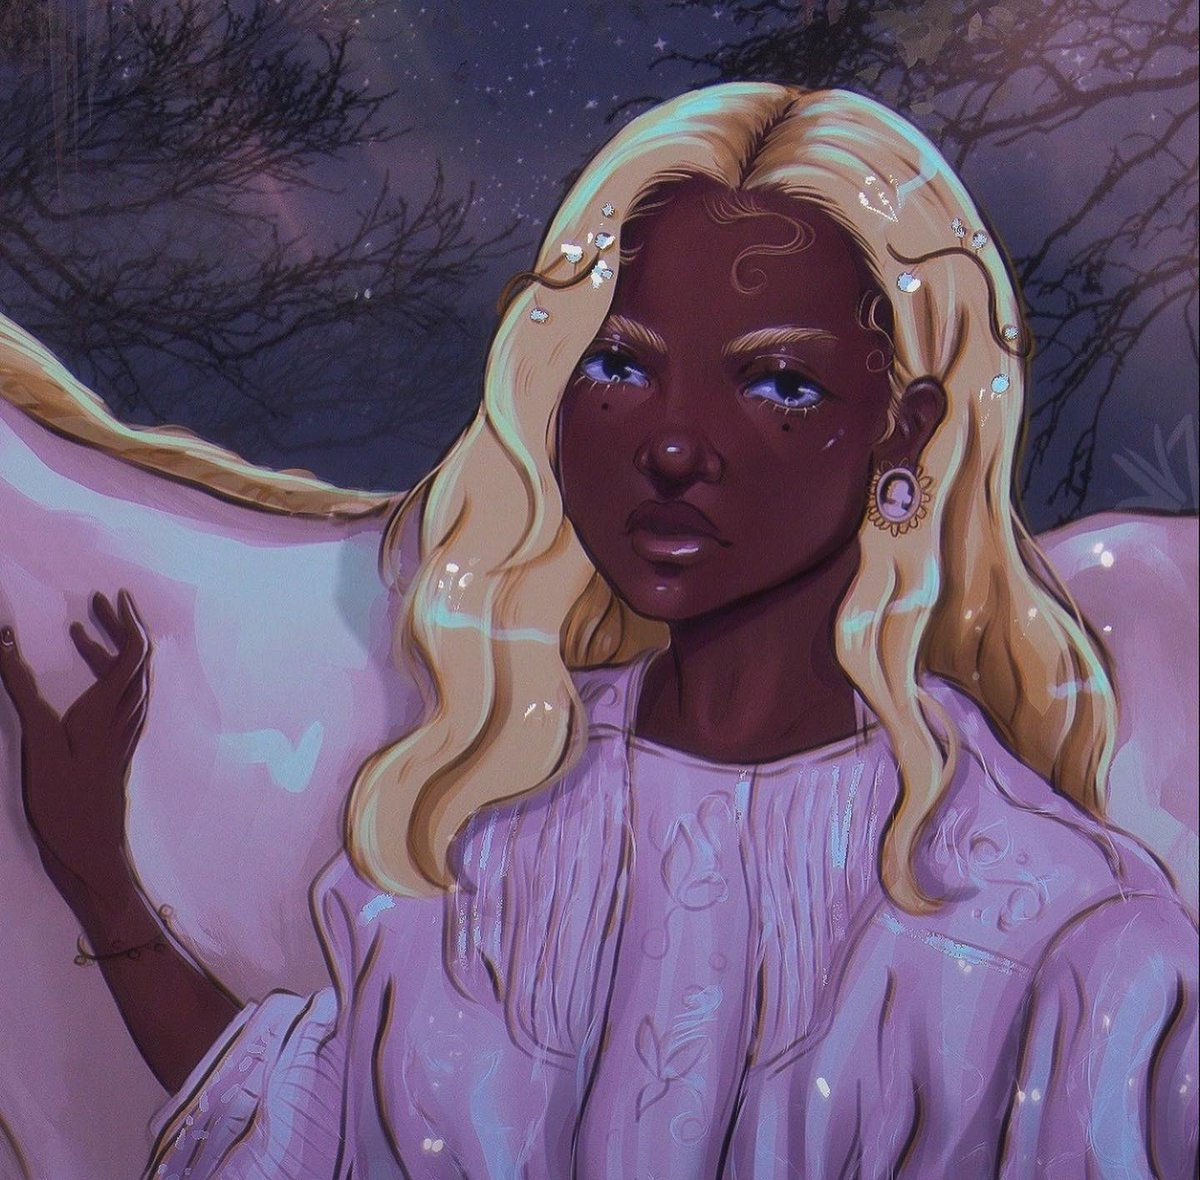 @fettiyaq Also, just posted an art piece and your blonde look inspired me ✨ https://t.co/D7fjZzvw9C